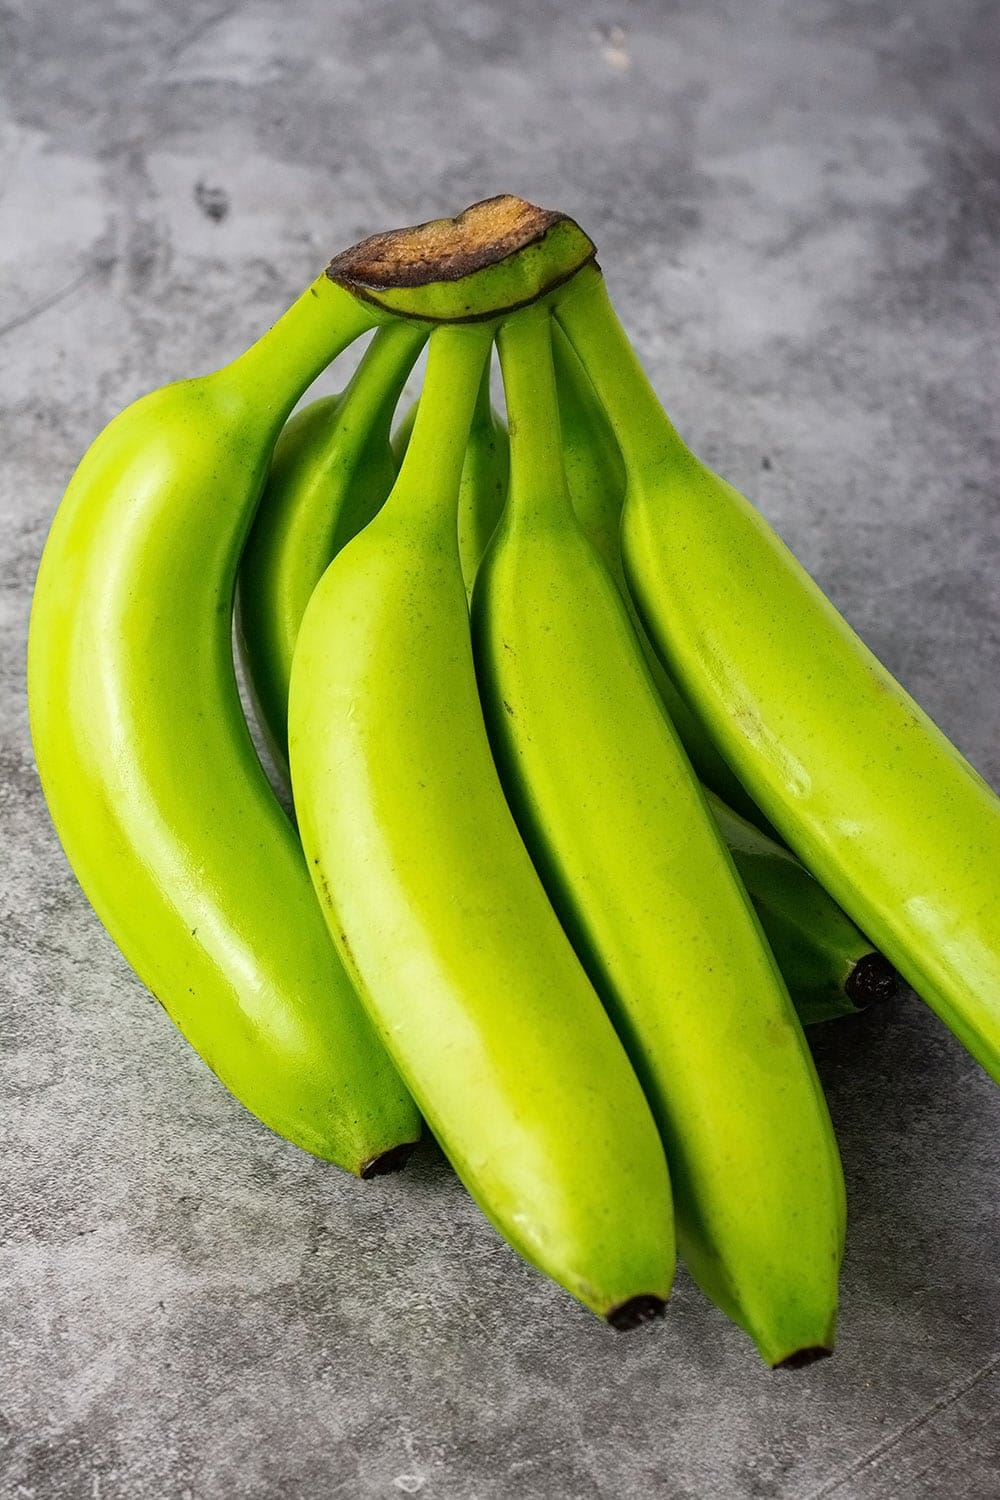 Green banana on a marble background